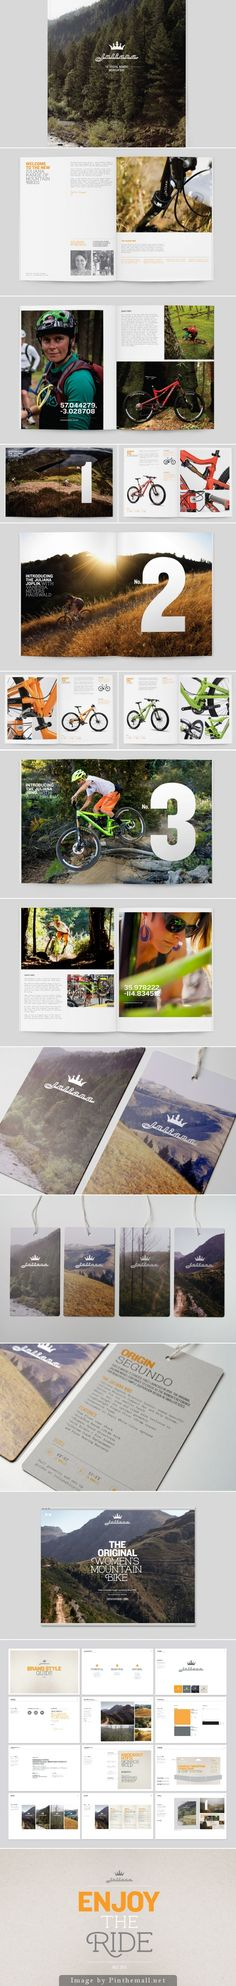 http://www.un-studio.com/juliana-bicycles.html... - a grouped images picture